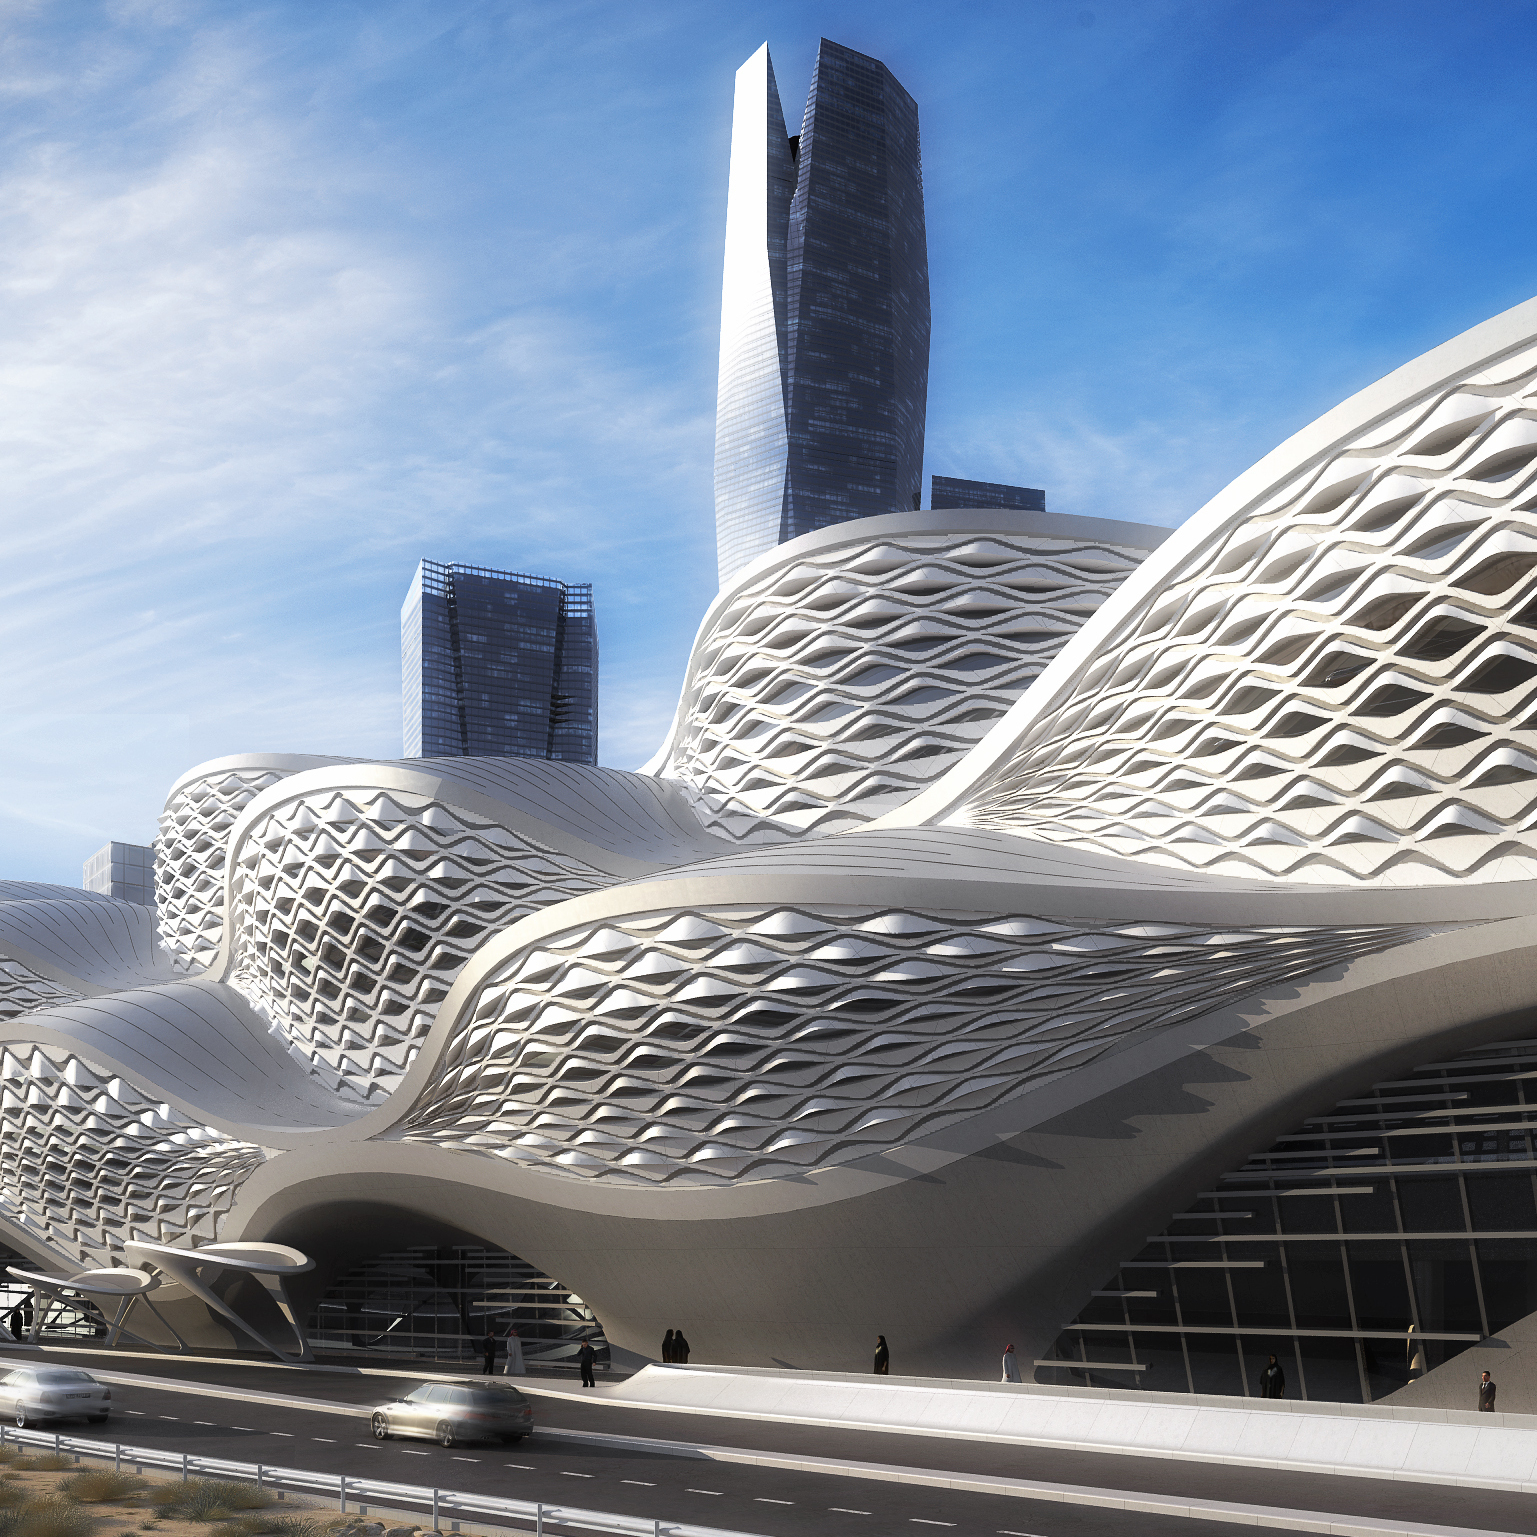 Designed by Pritzker prize-winning architect Zaha Hadid, the King Abdullah Financial District Metro Station will serve as a key interchange on the new Riyadh subway network.